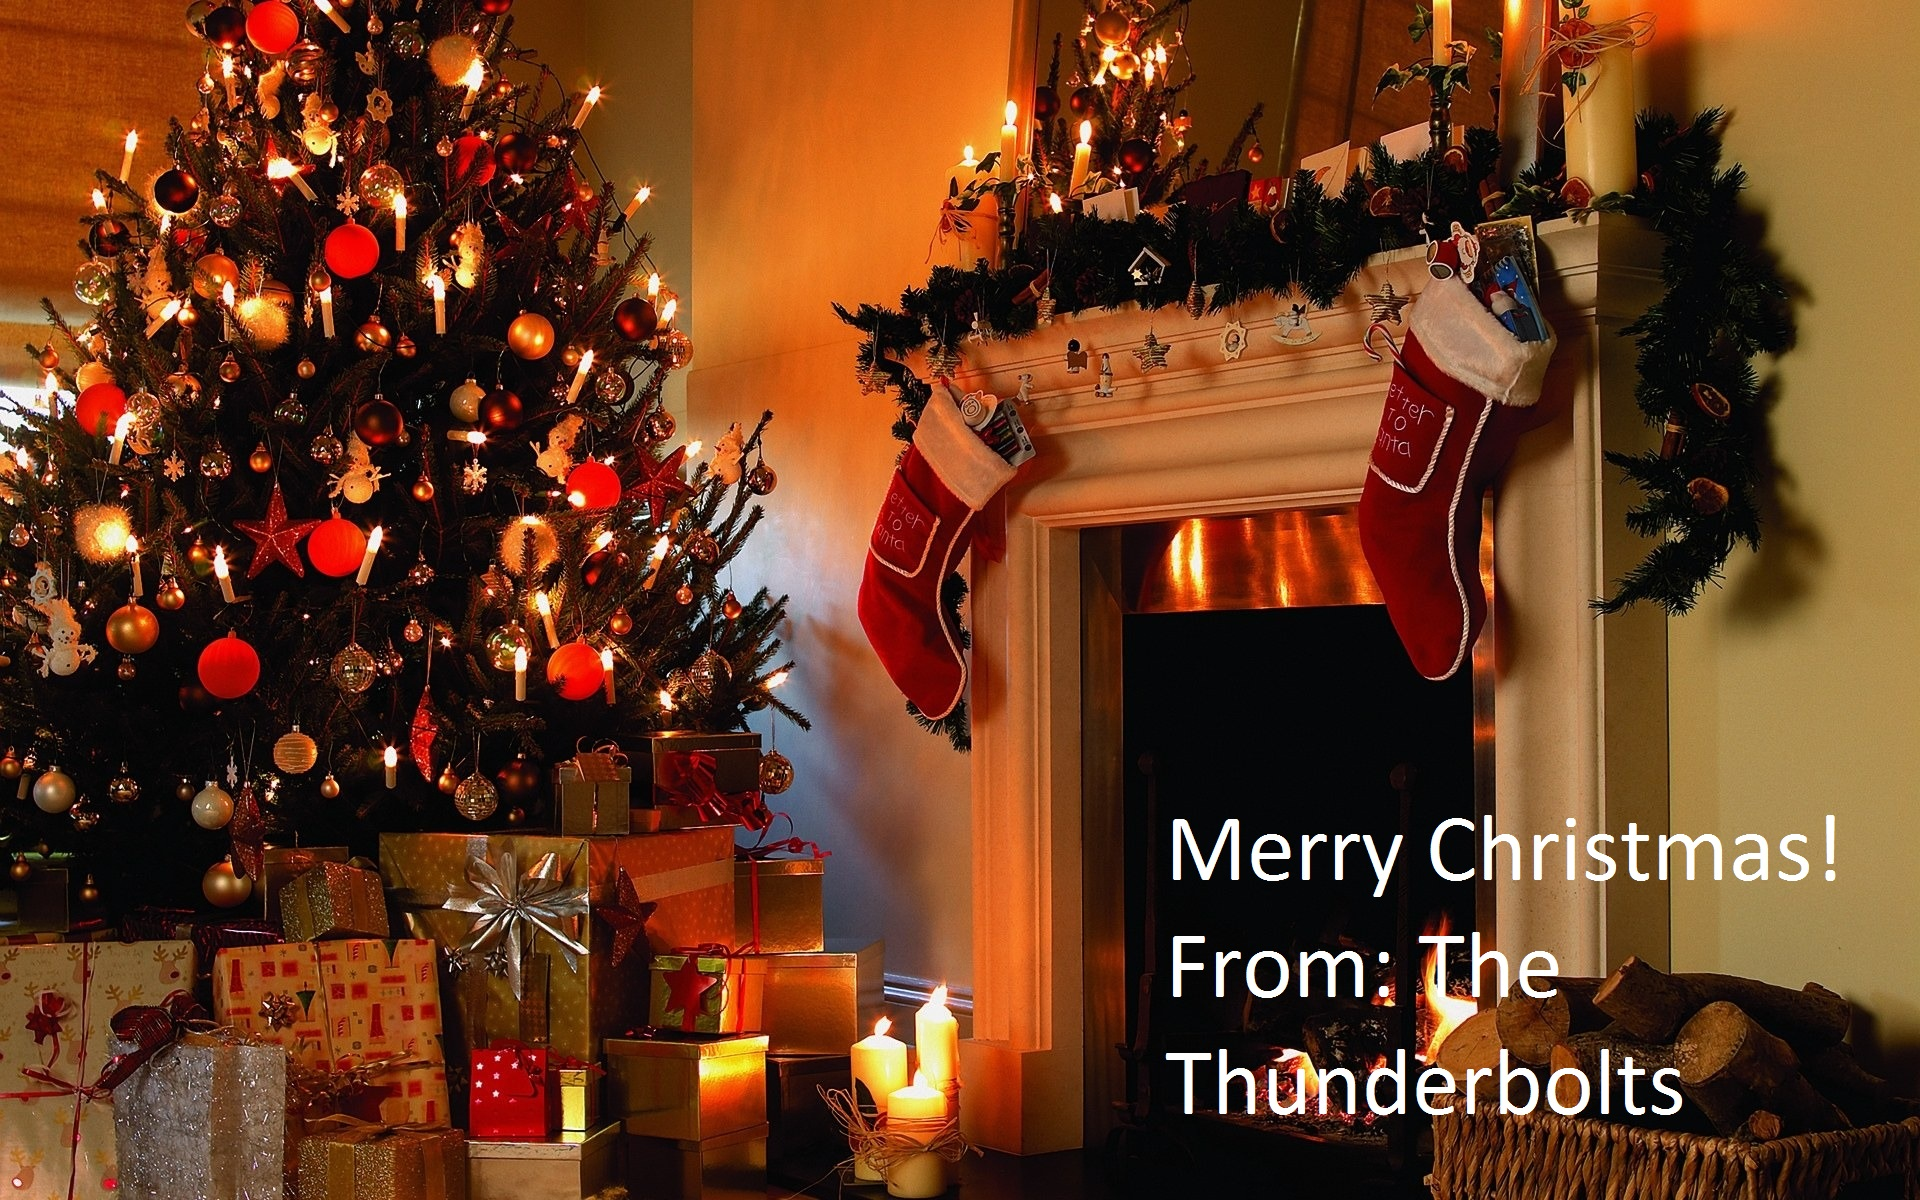 Thunderbolts Christmas Stories